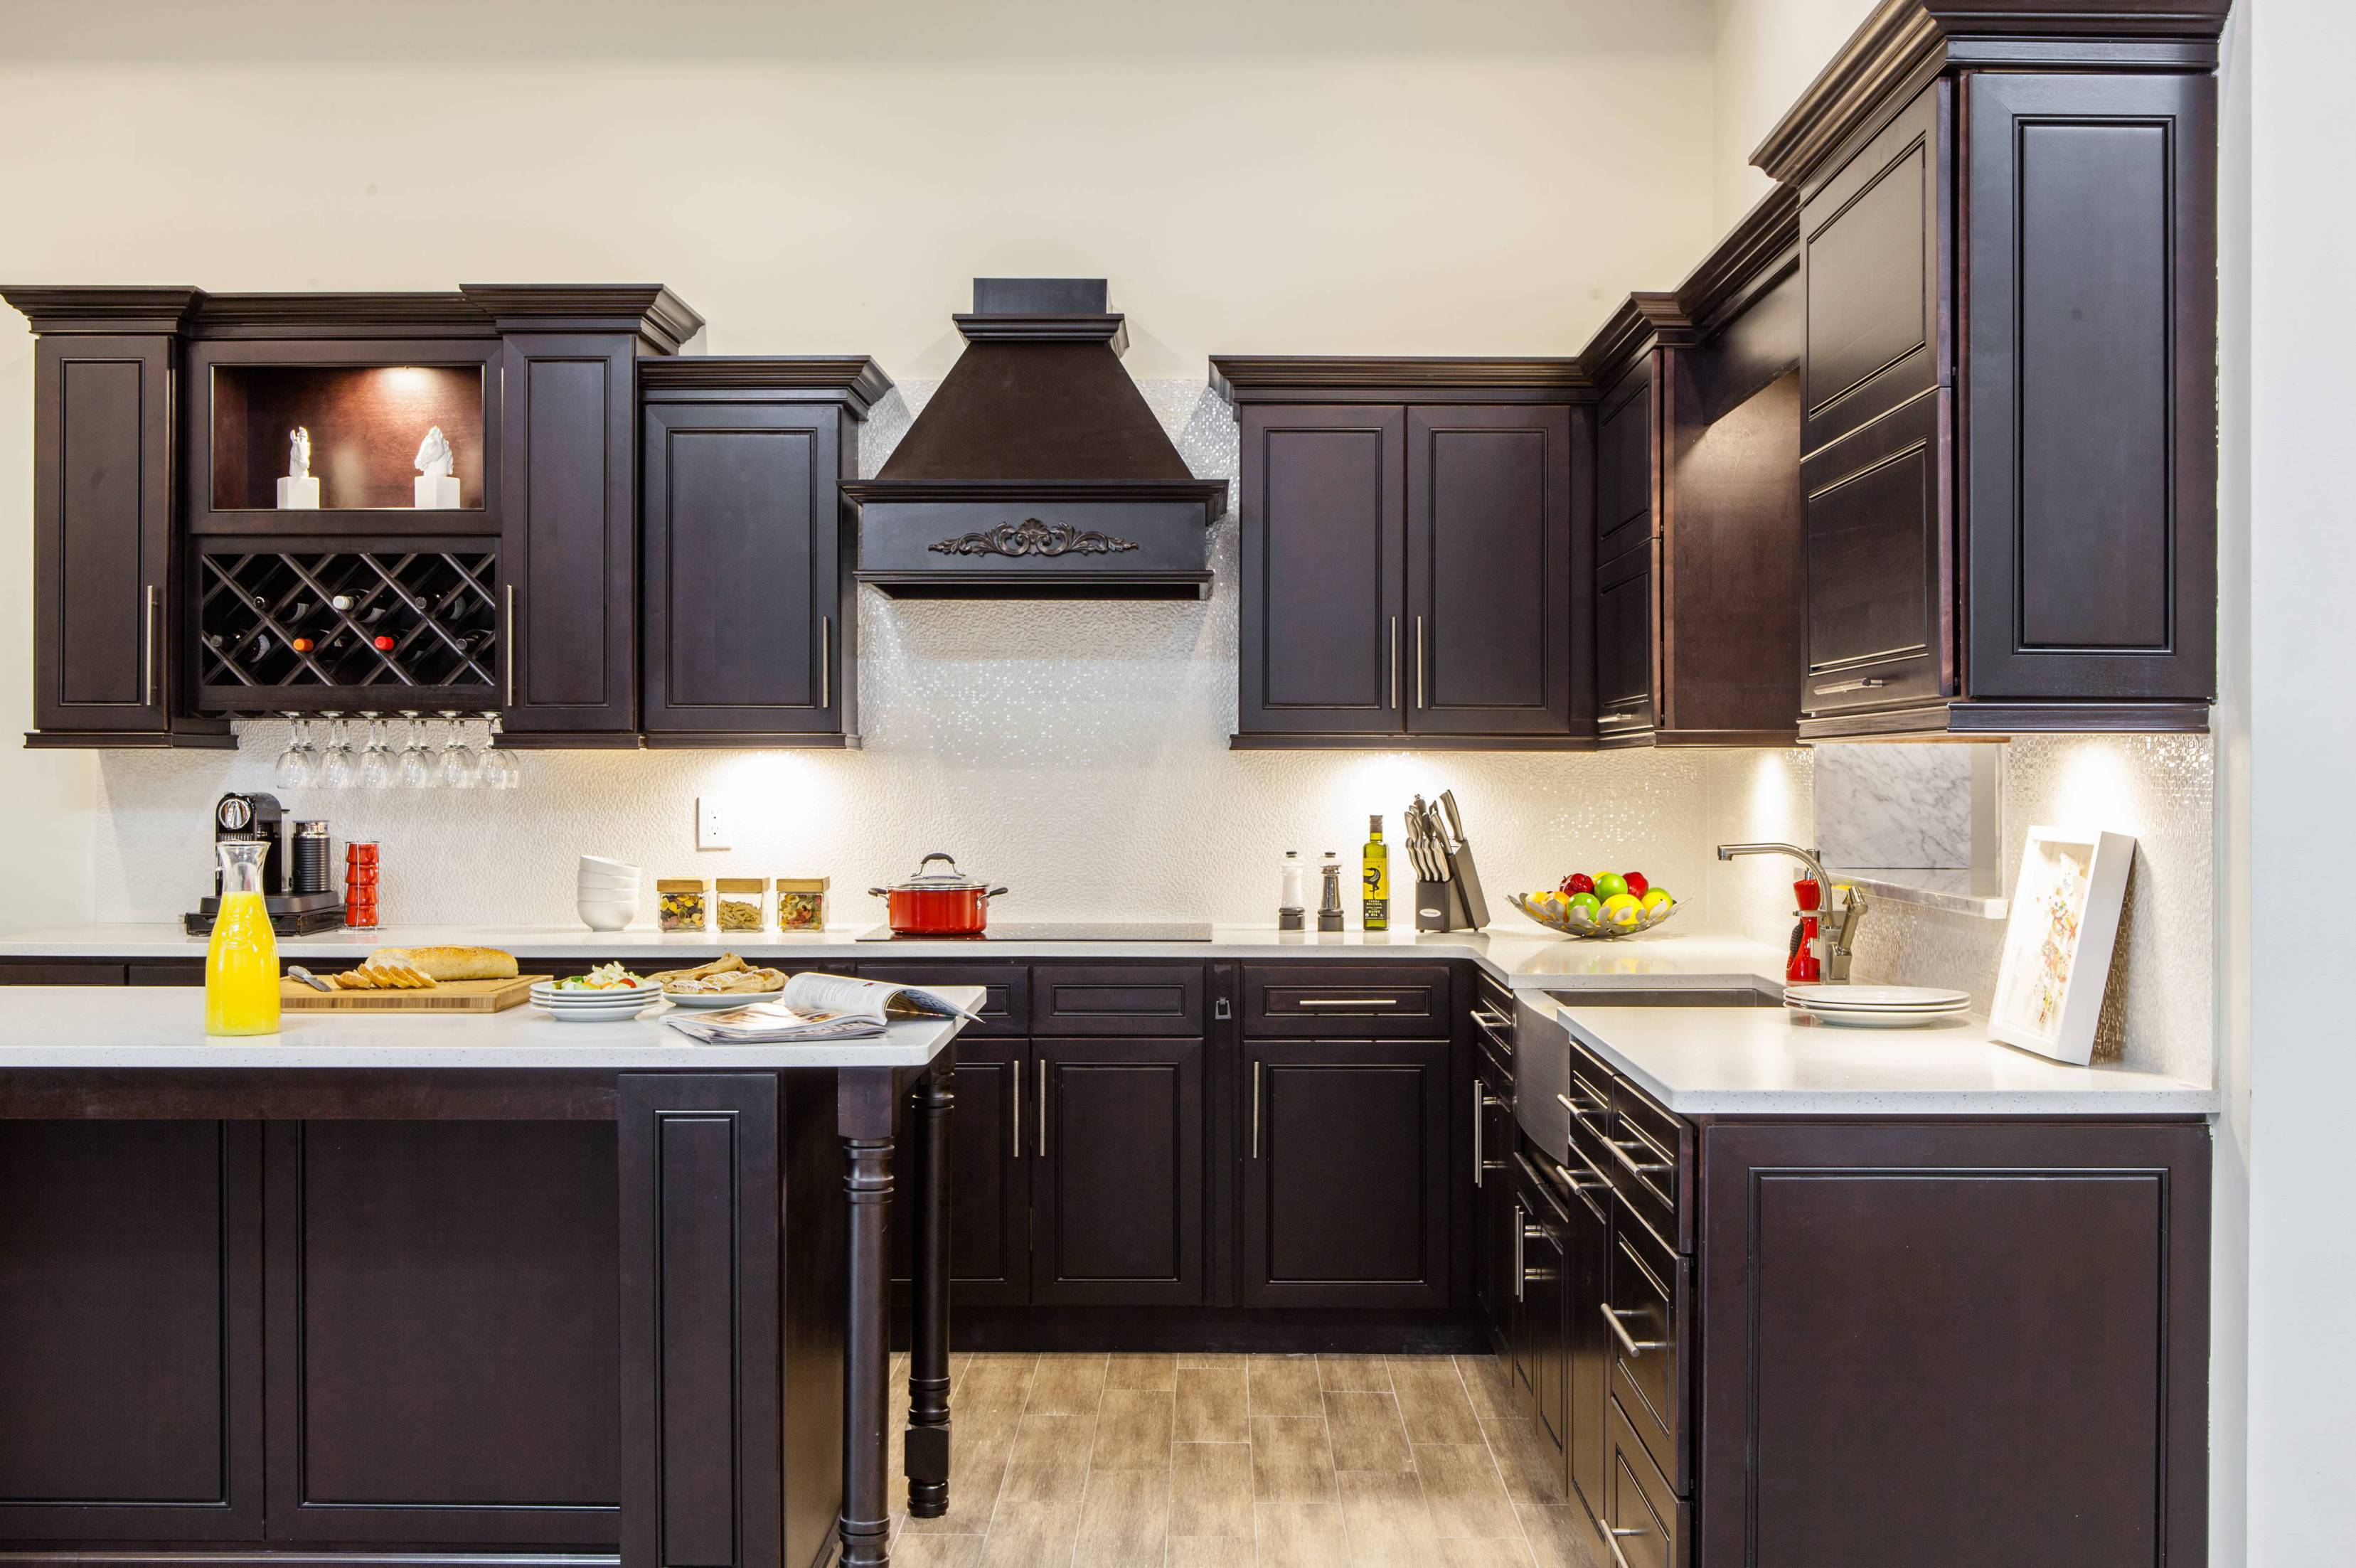 kitchen remodeling dallas tx, bathroom remodeling, floor installation